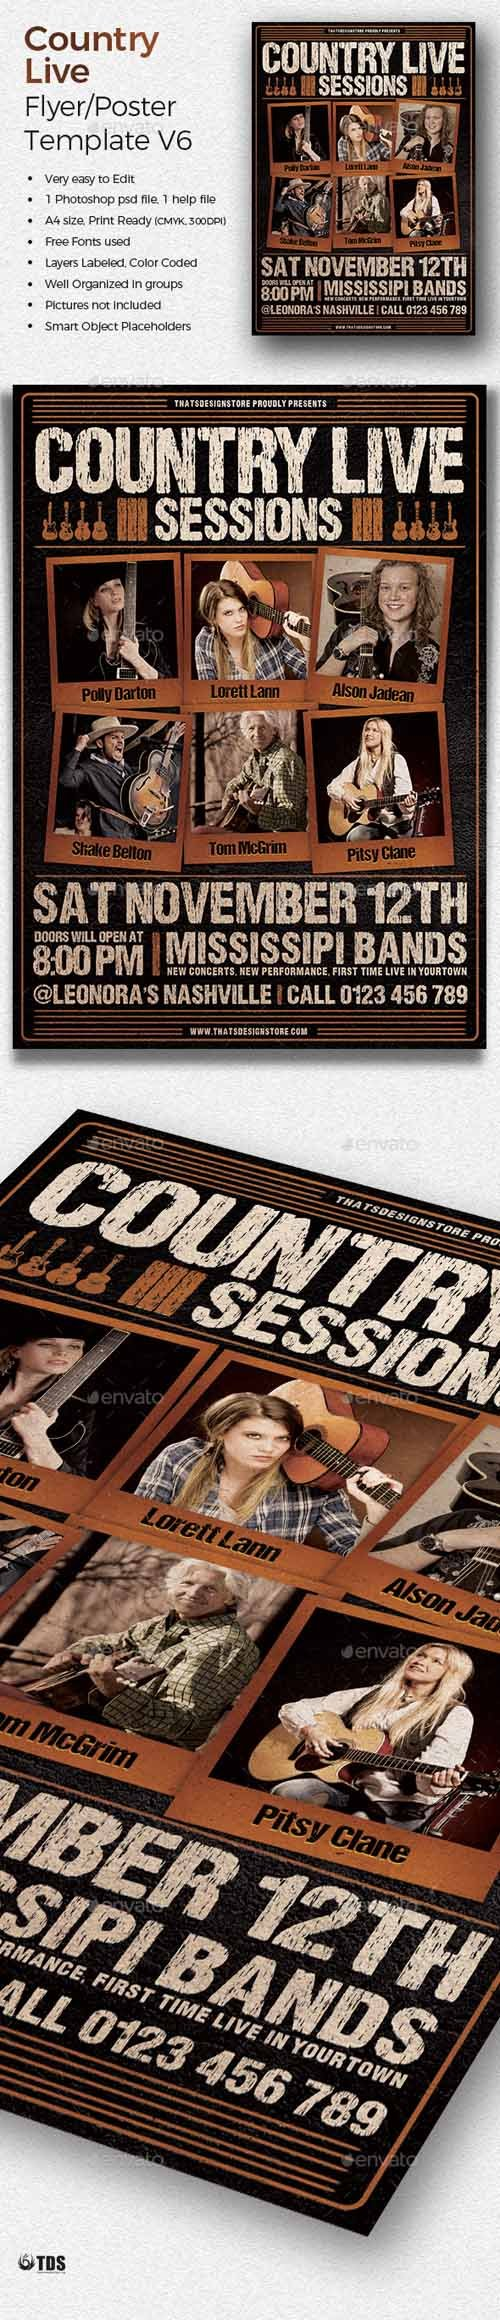 Country Live Flyer Template V6 20038127